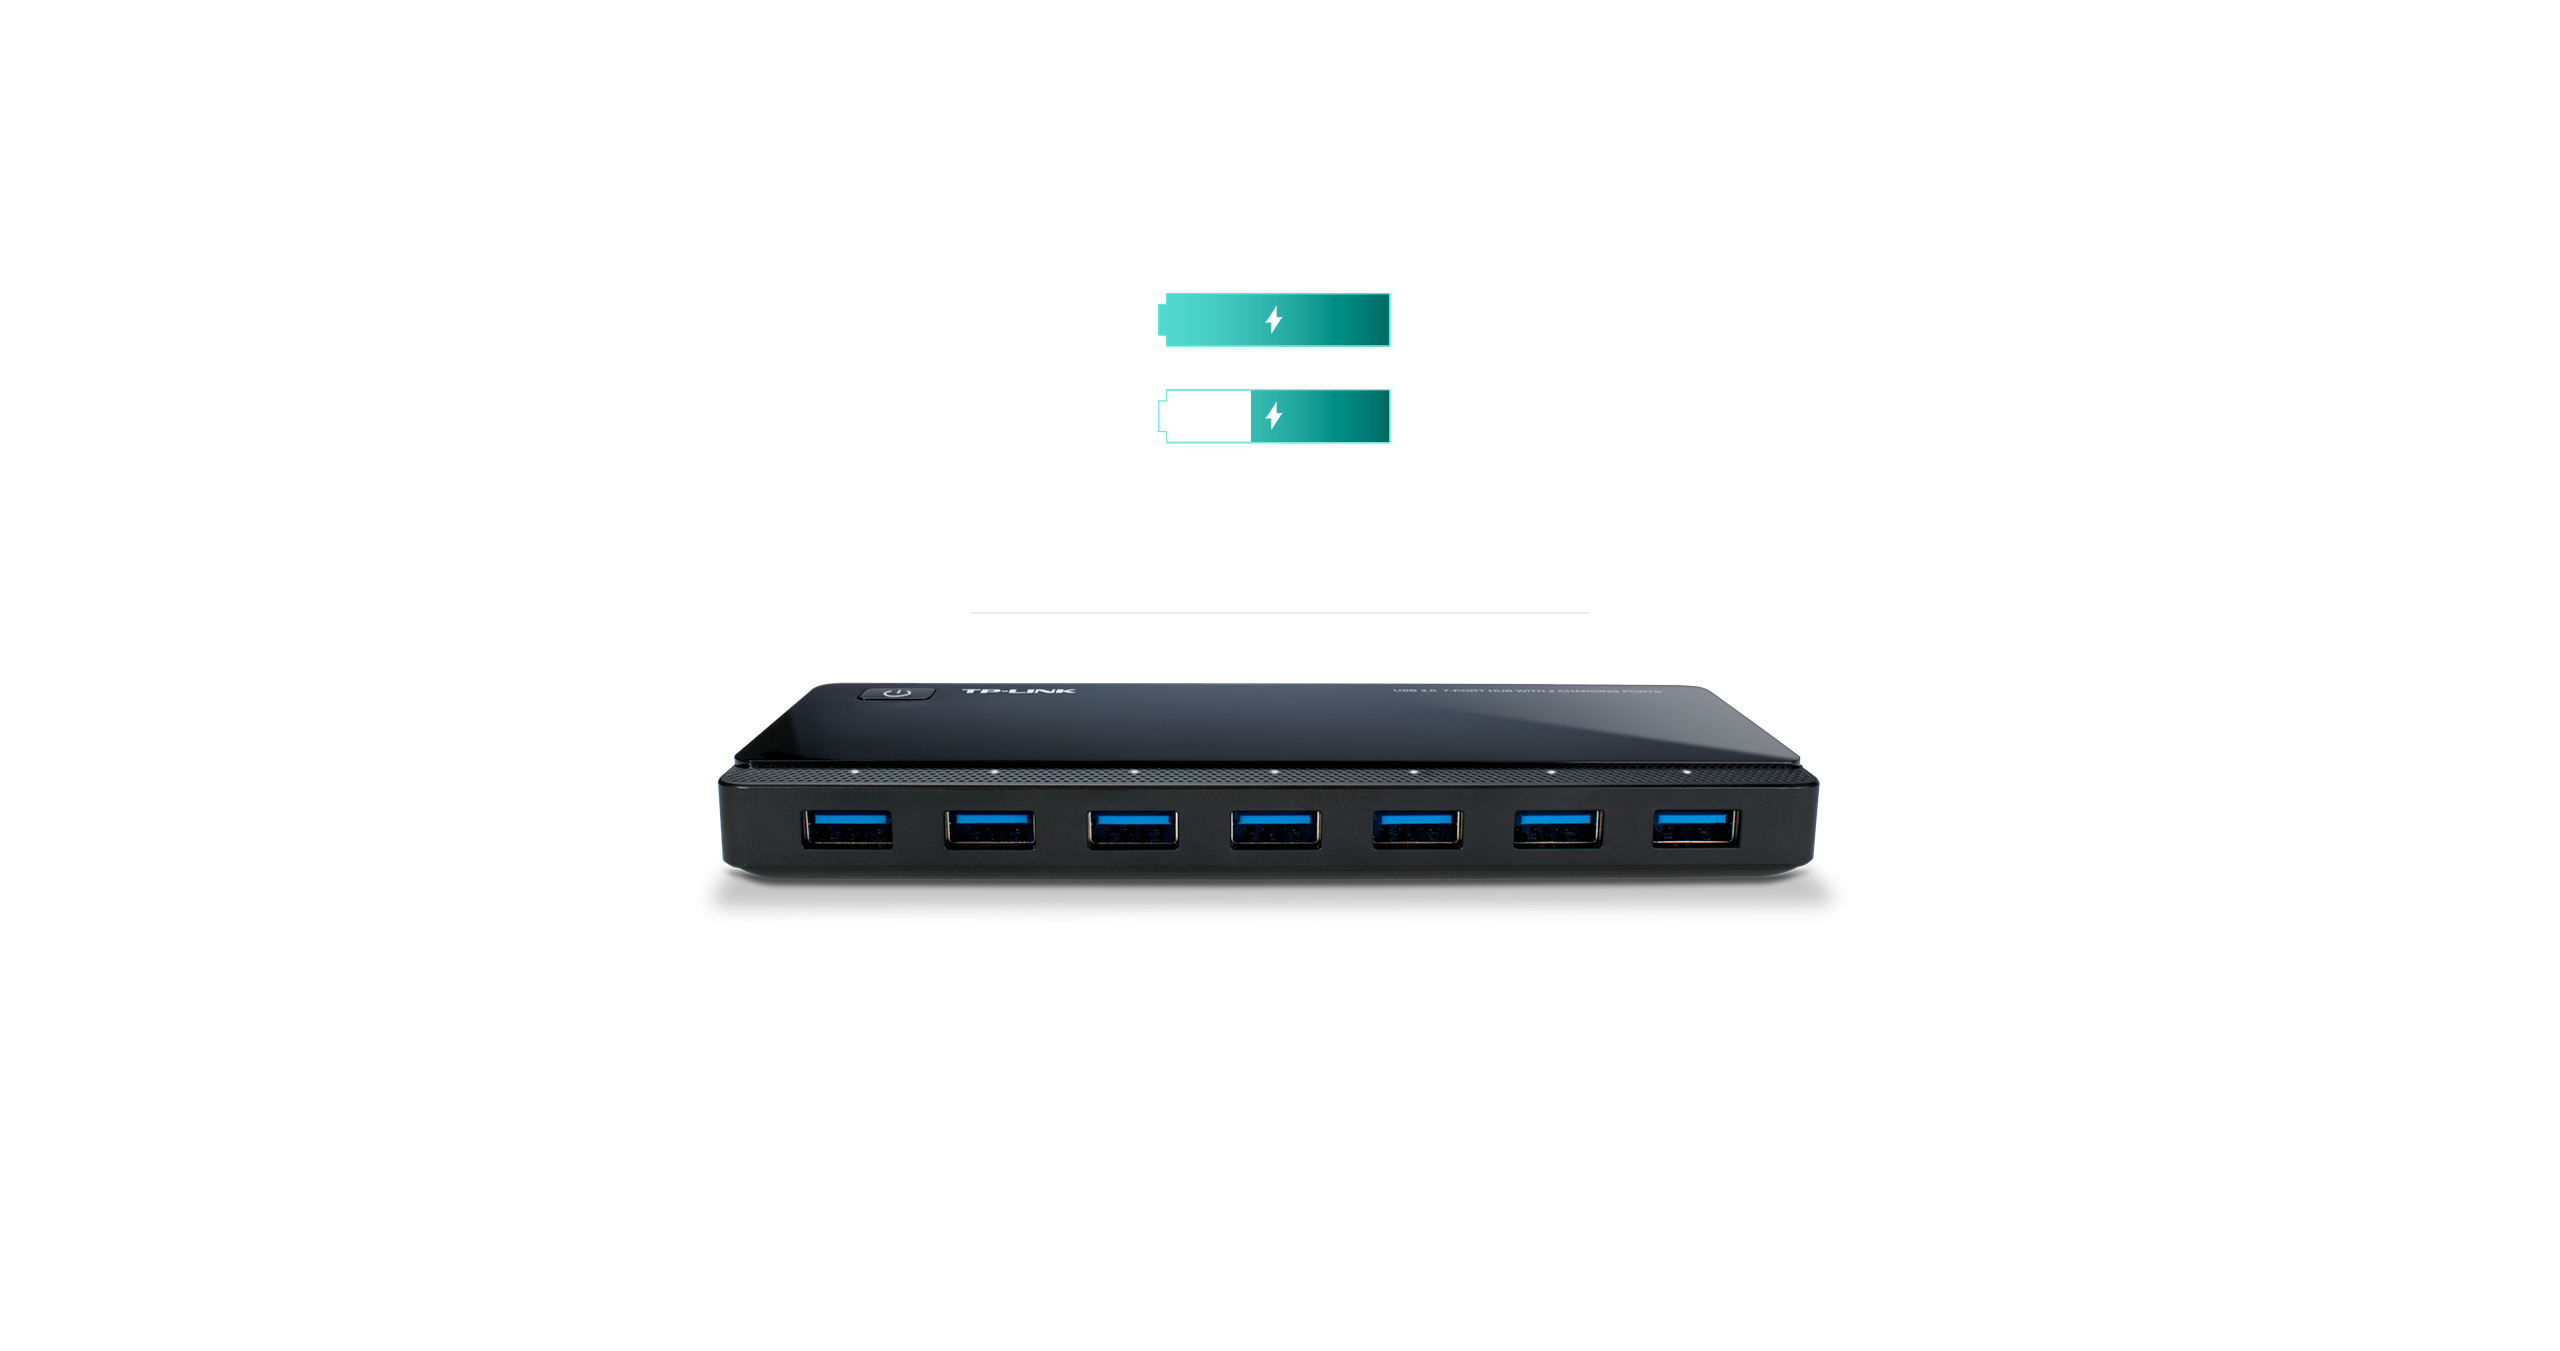 https://www.tp-link.com/res/images/overview/uh720/d.jpg